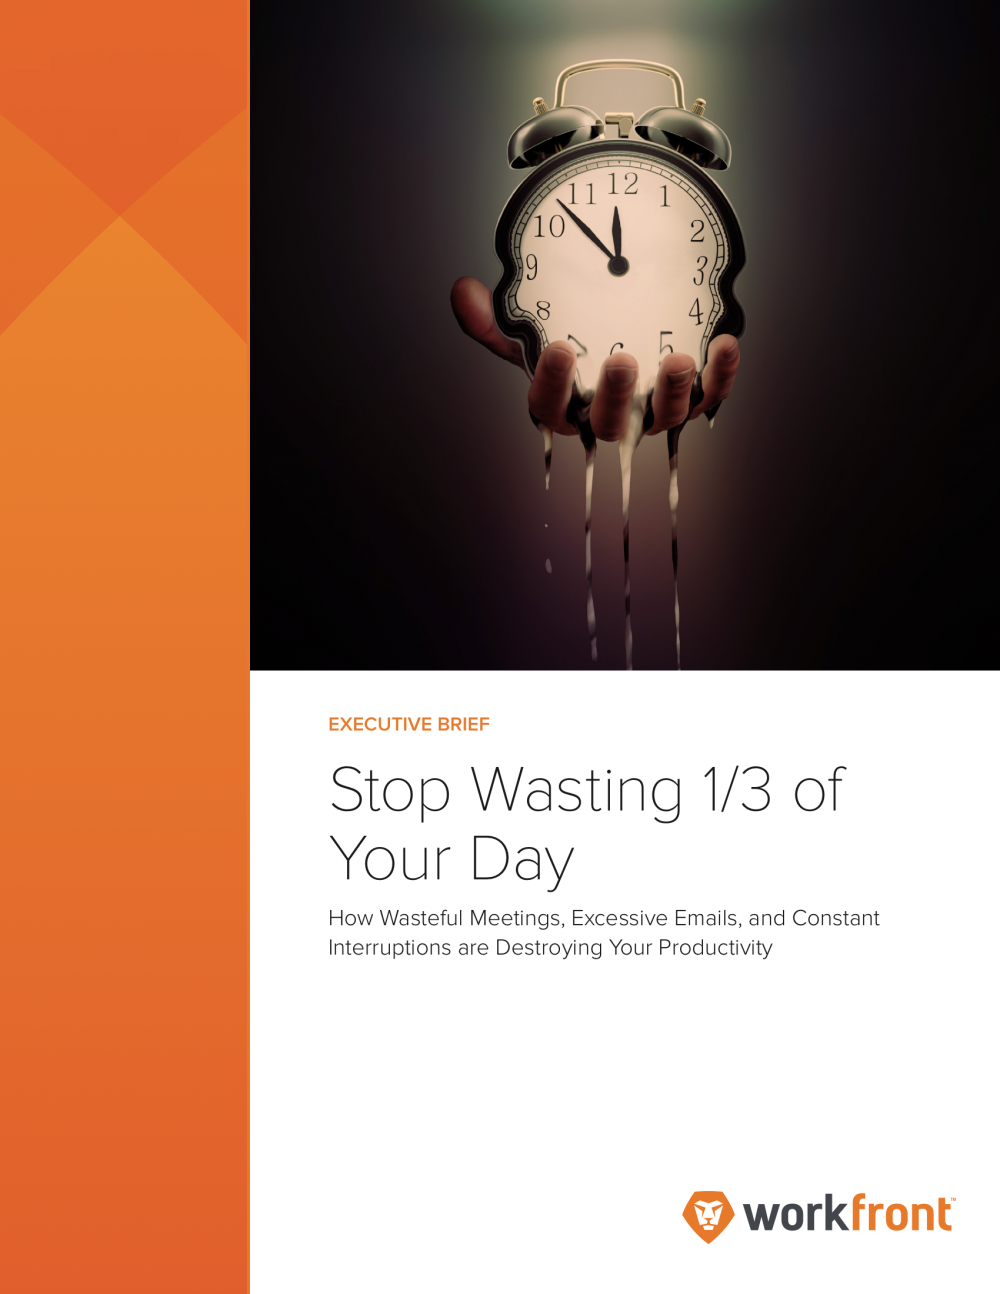 Stop Wasting 1/3 of Your Day